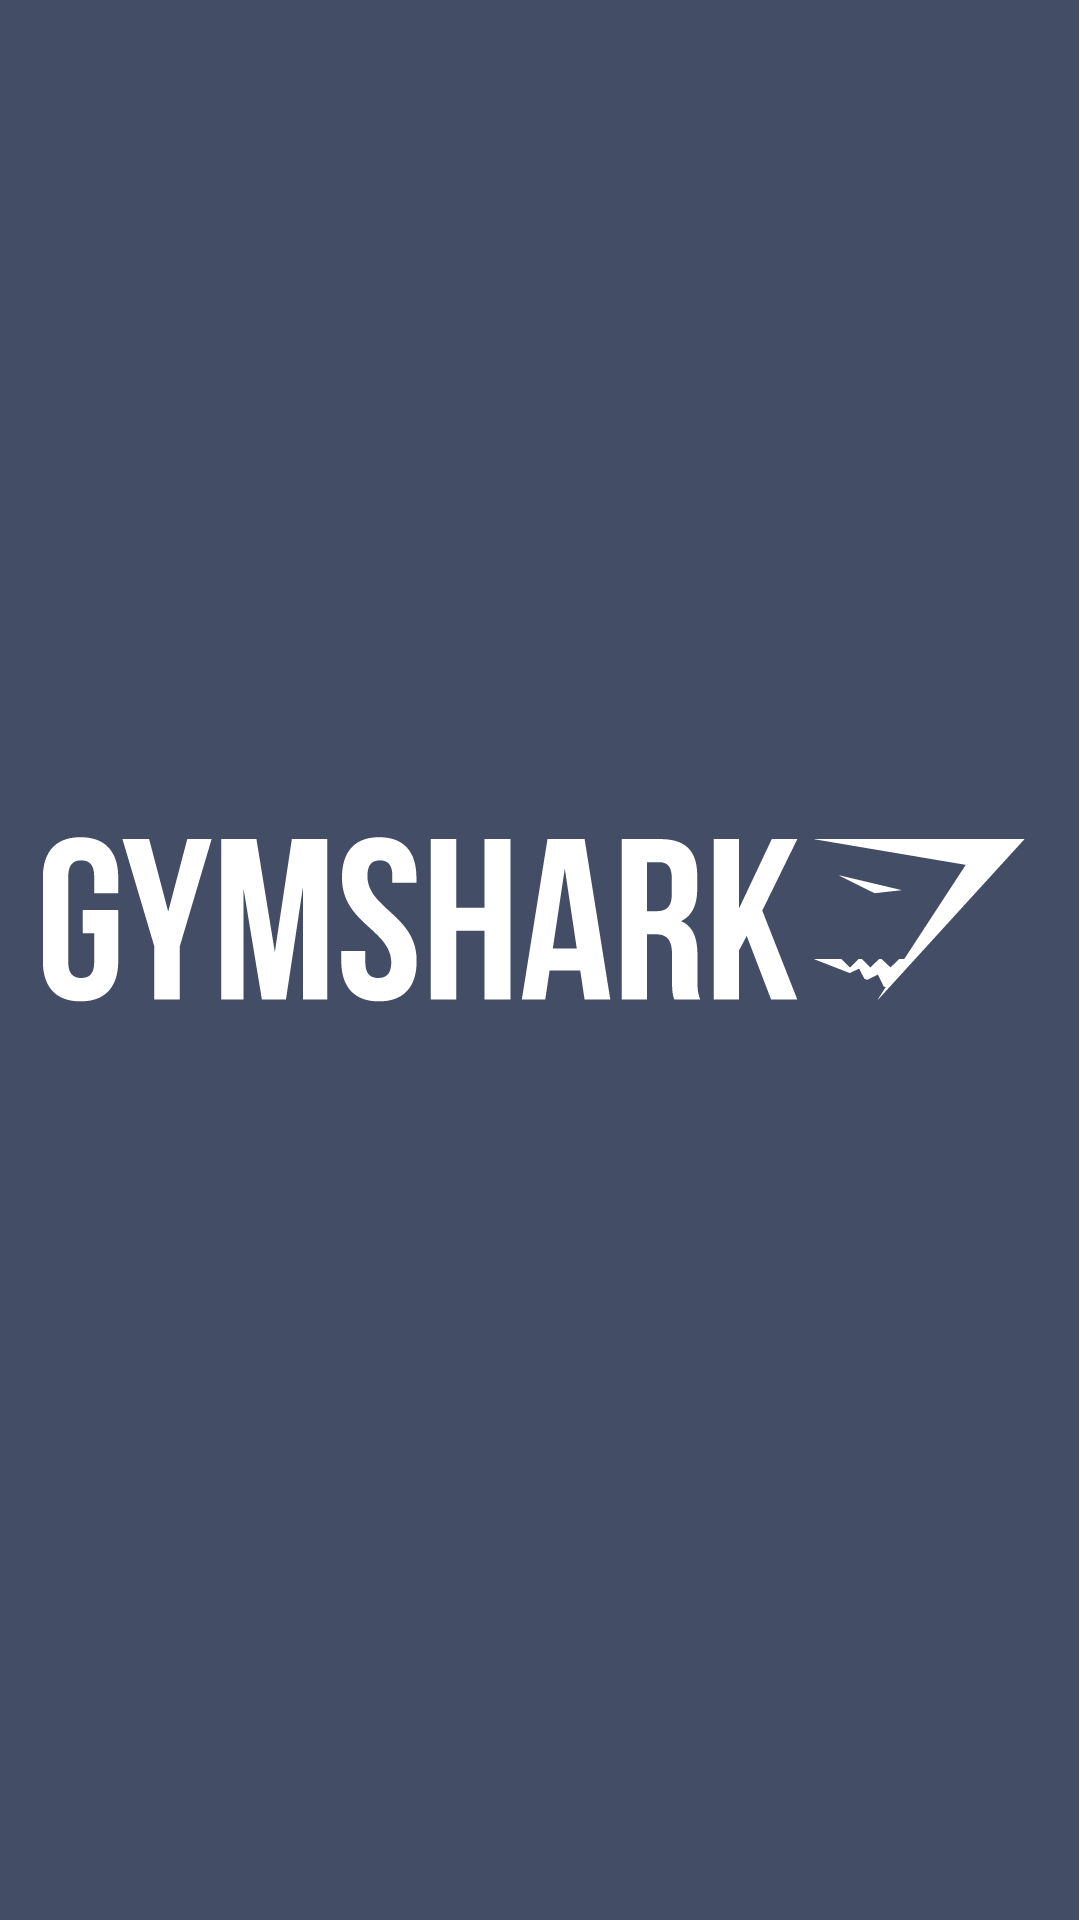 Gymshark Official Store Gym Clothes Workout Wear Gymshark